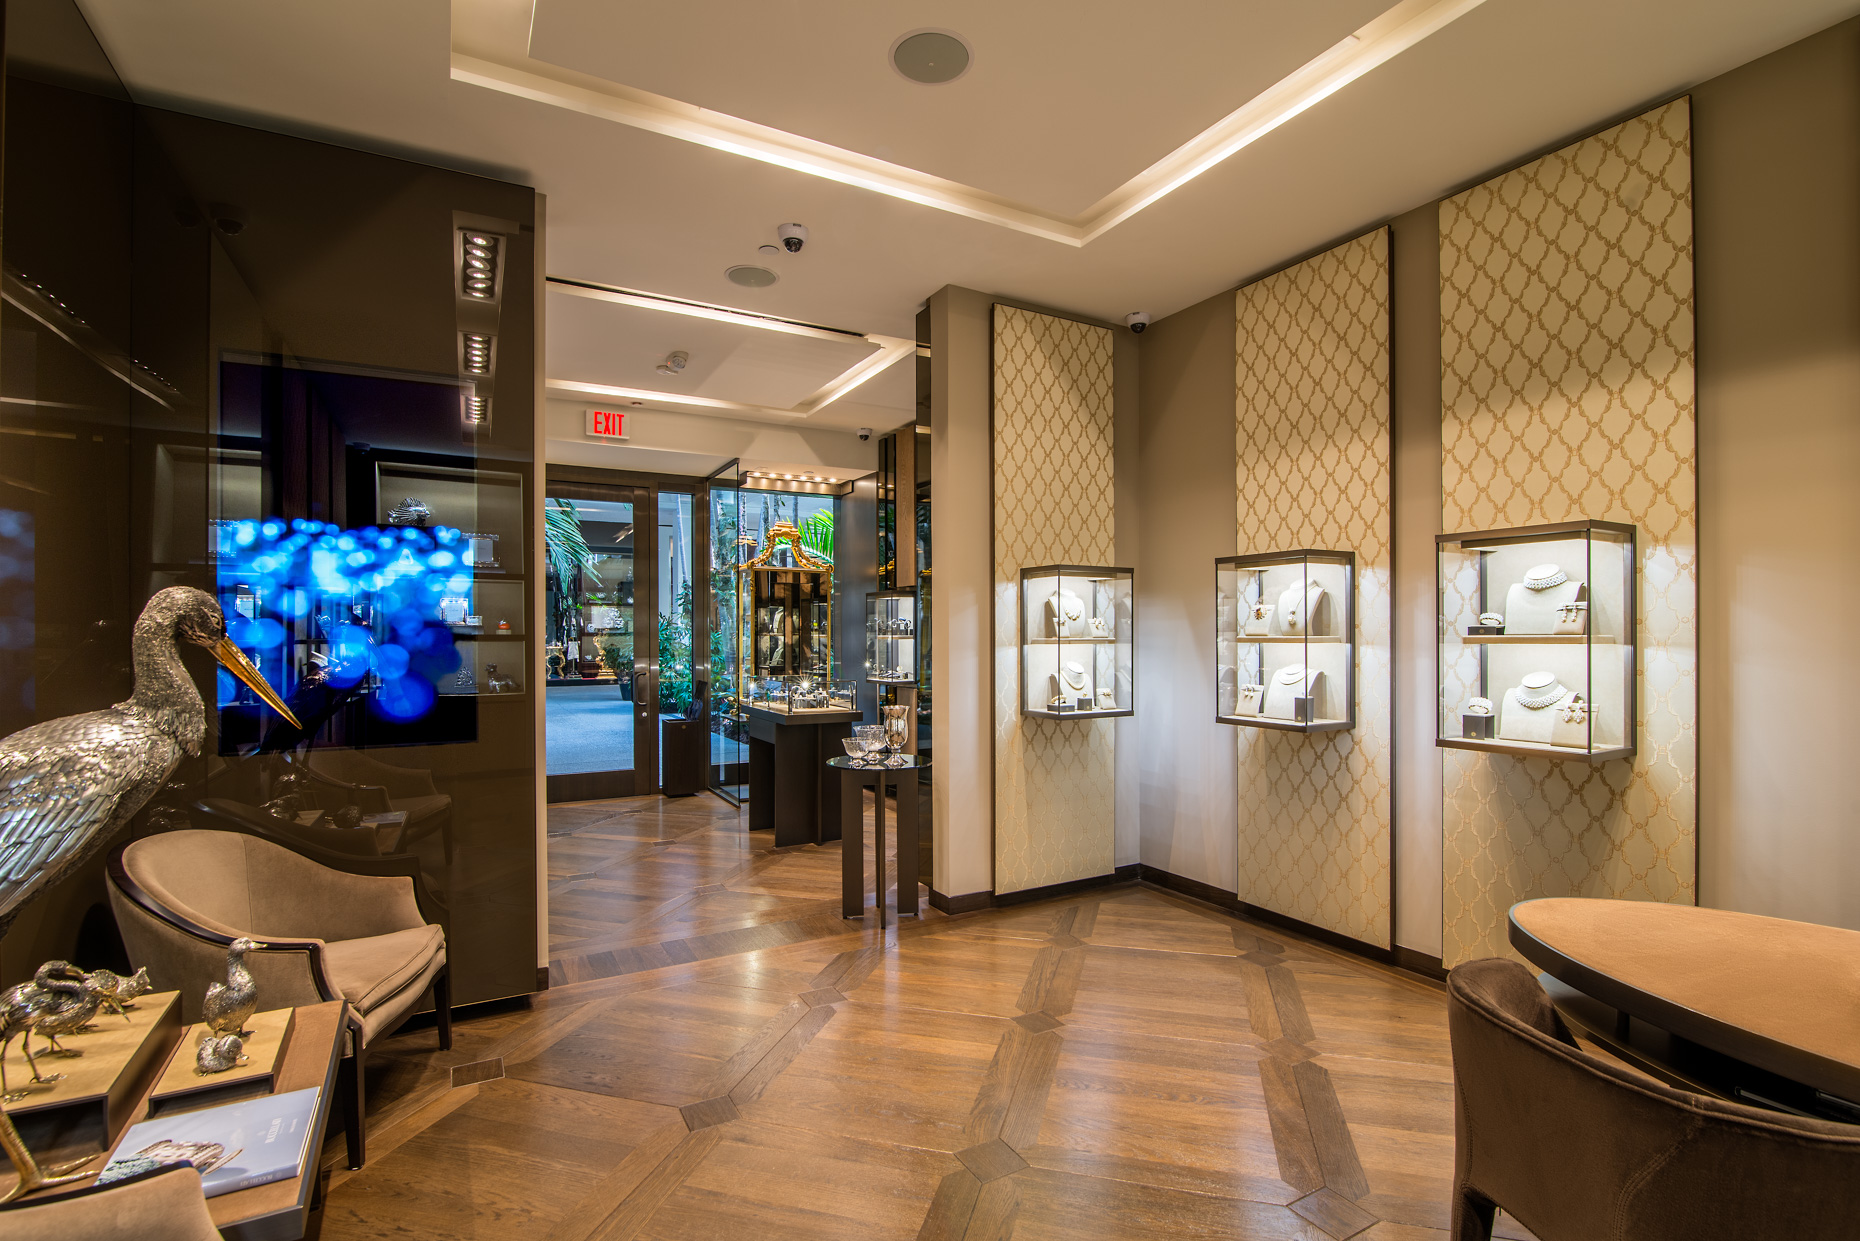 Buccellati - Retail interior photography